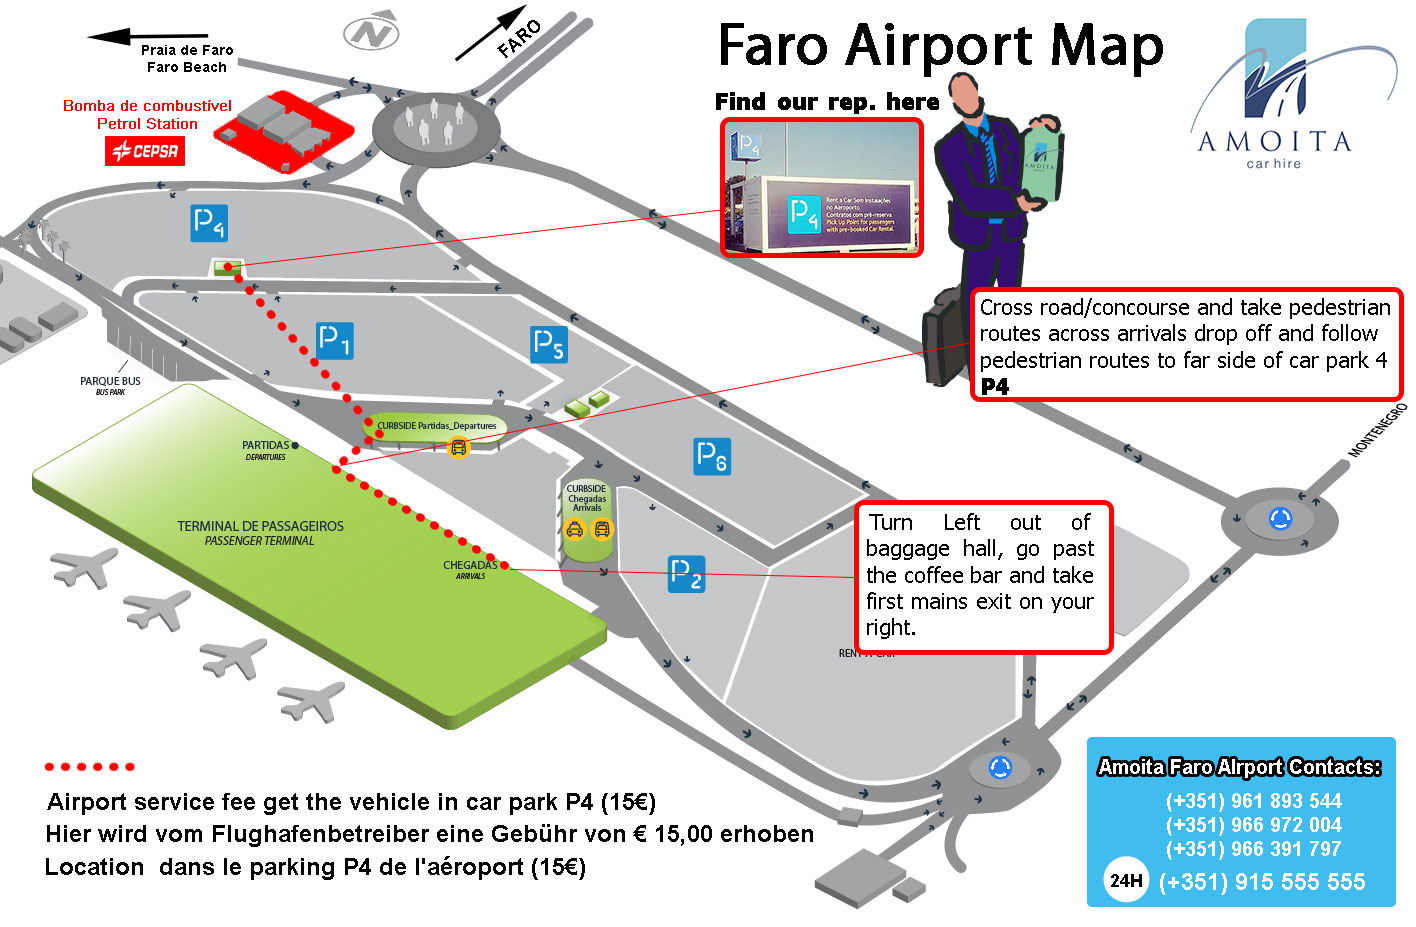 Image Result For Faro Airport Map Car Hire